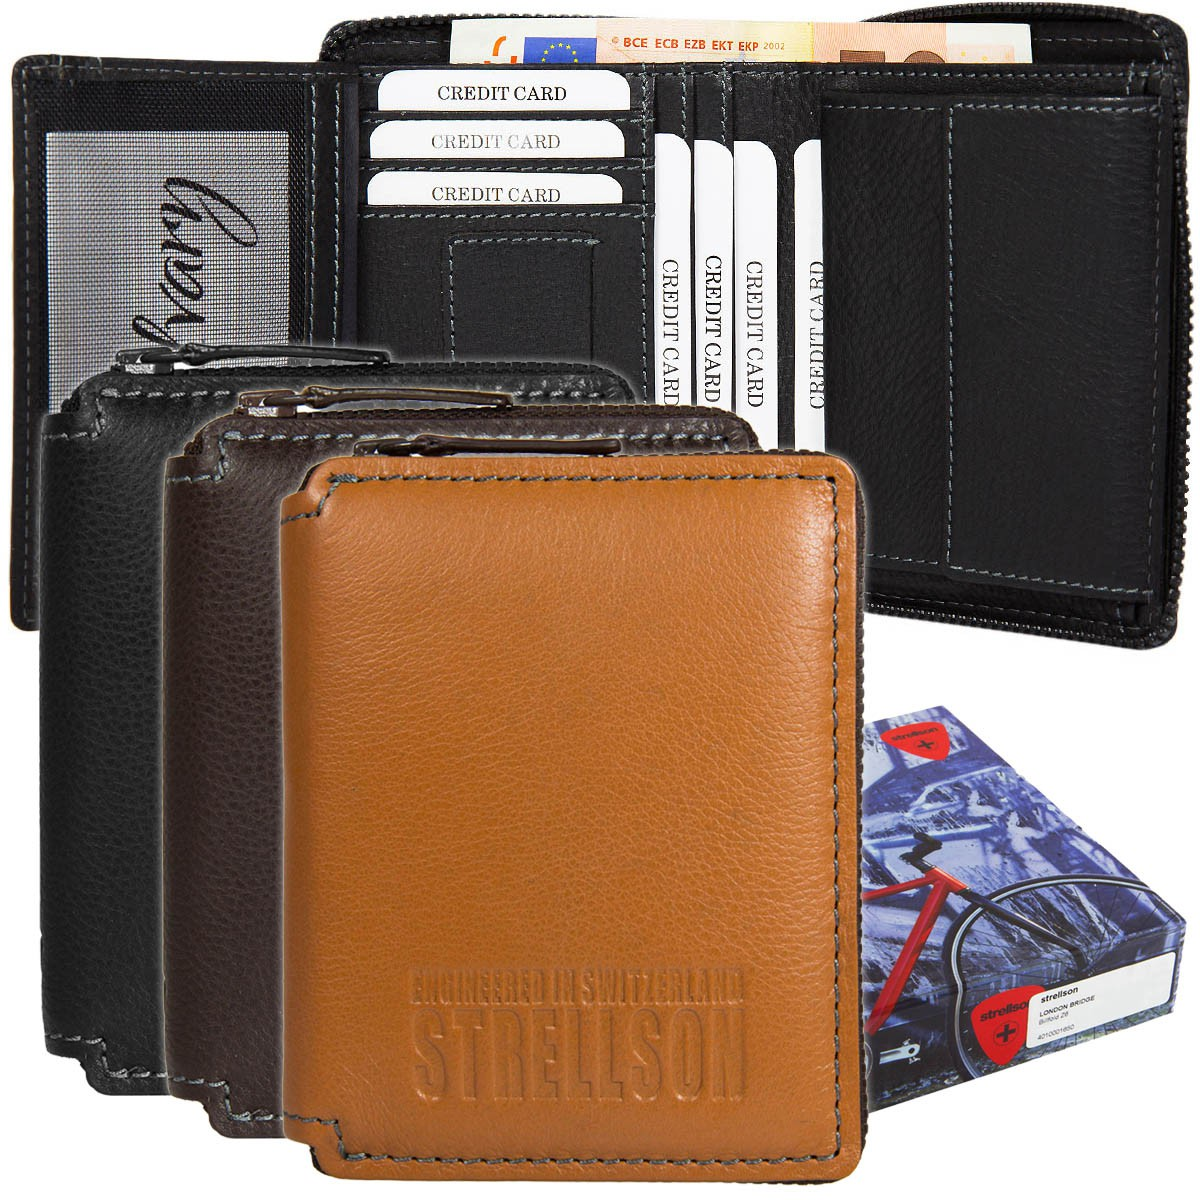 Strellson London Bridge Billfold Z6 Geldbörse 4010001650